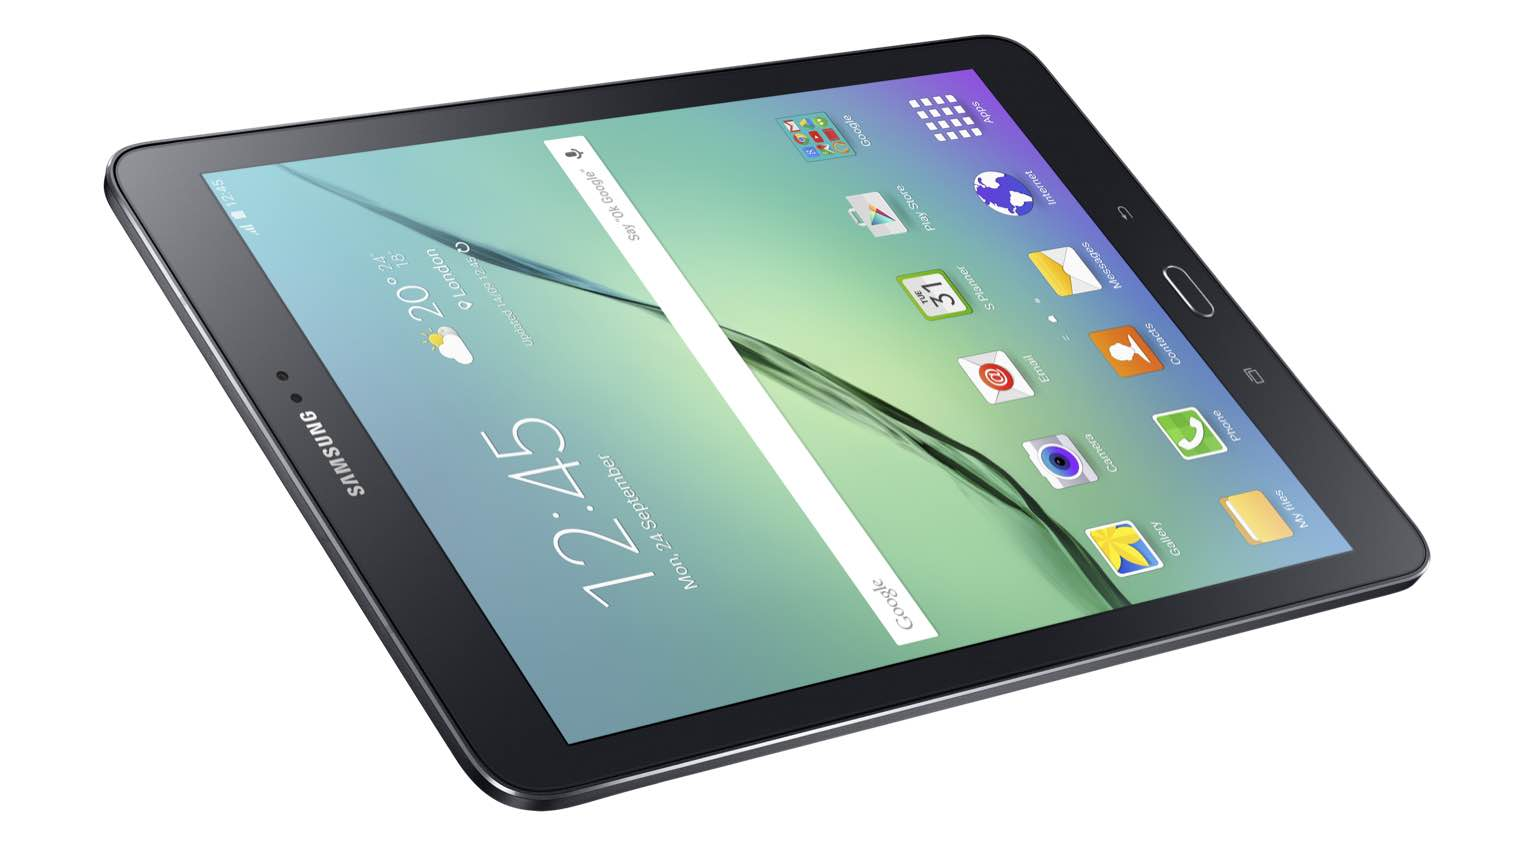 Grote Tablet Android Tablets De Beste Android Tablets In één Overzicht